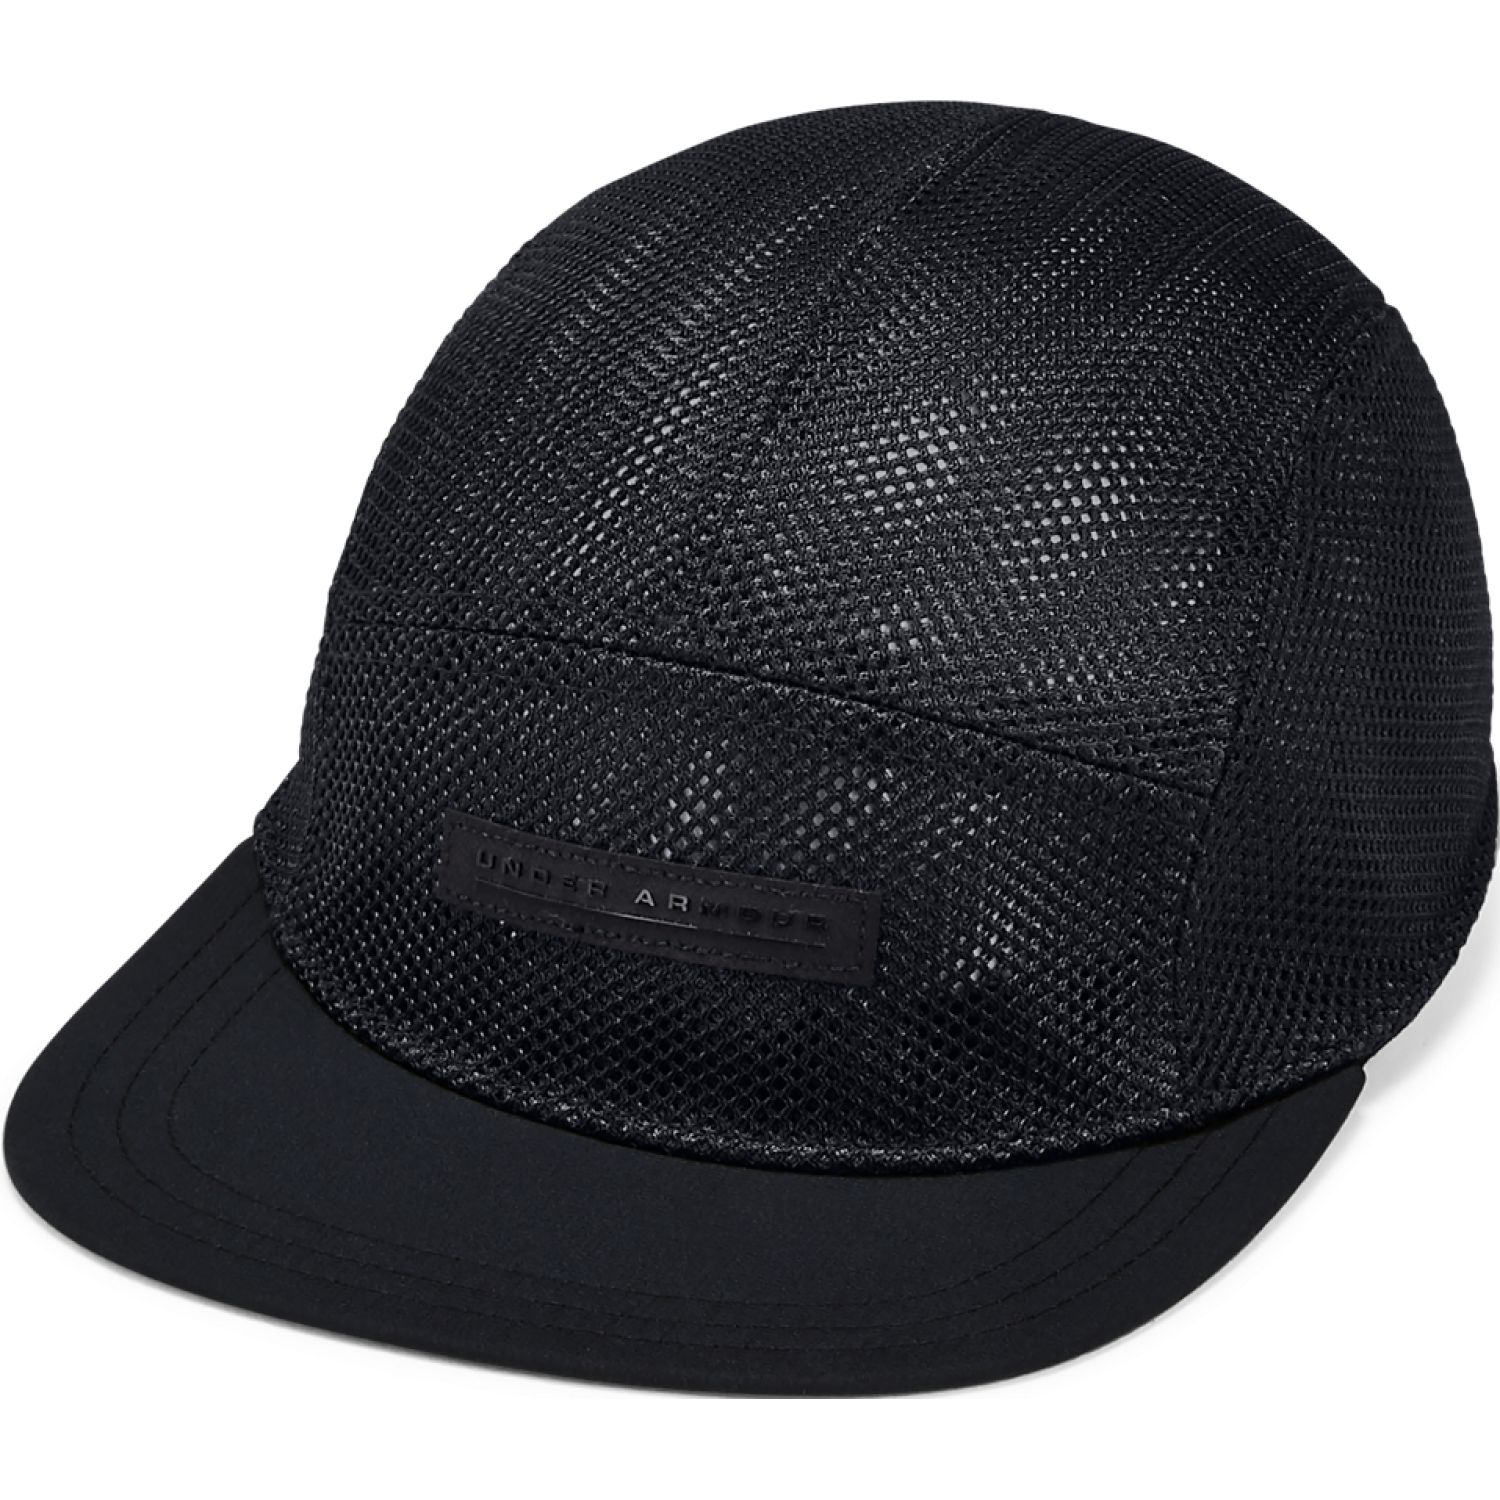 Under Armour men's elite pursuit camper Negro Gorros de Baseball